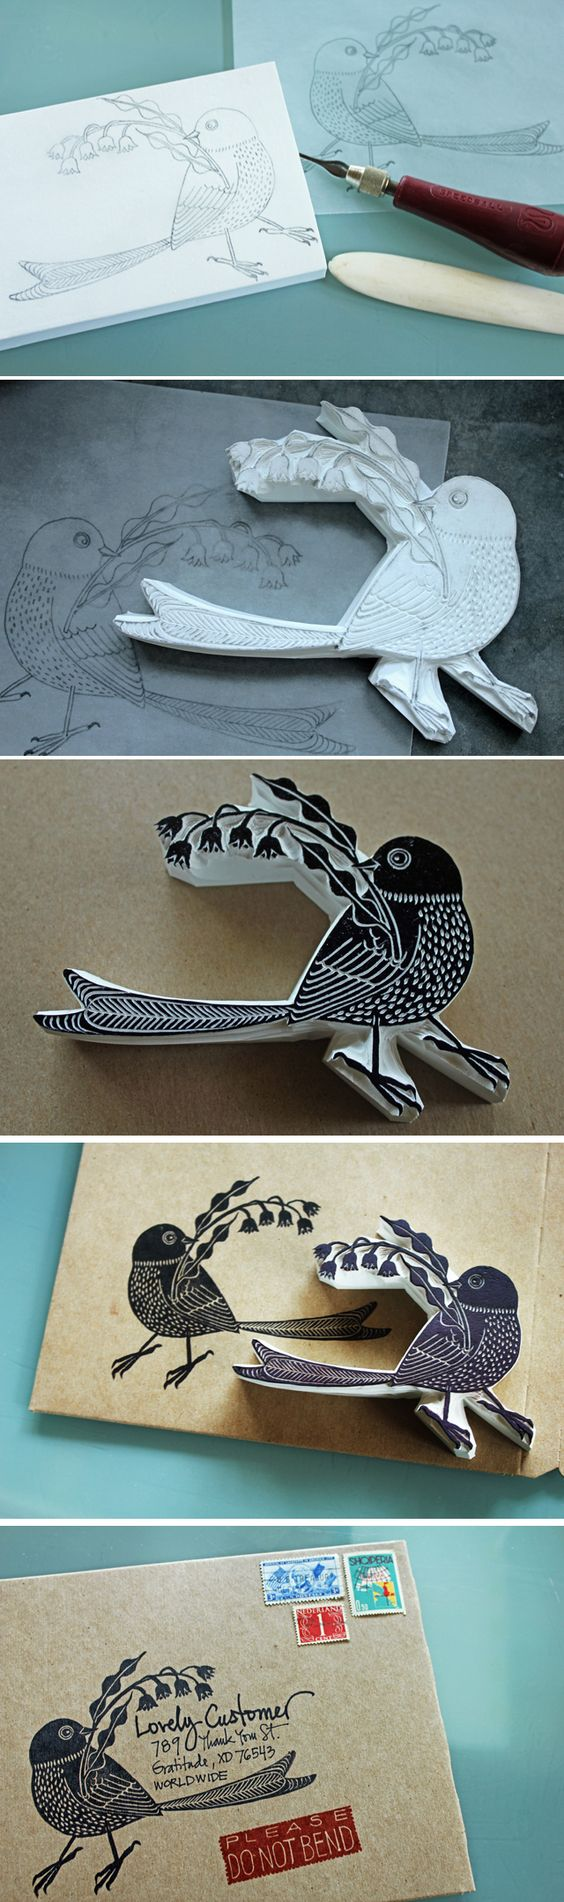 Carve your own stamp from a drawing or print out to create a beautiful envelope address or return label. Link to book with tutorial for making your own diy stamps! #bird #ink #packaging: